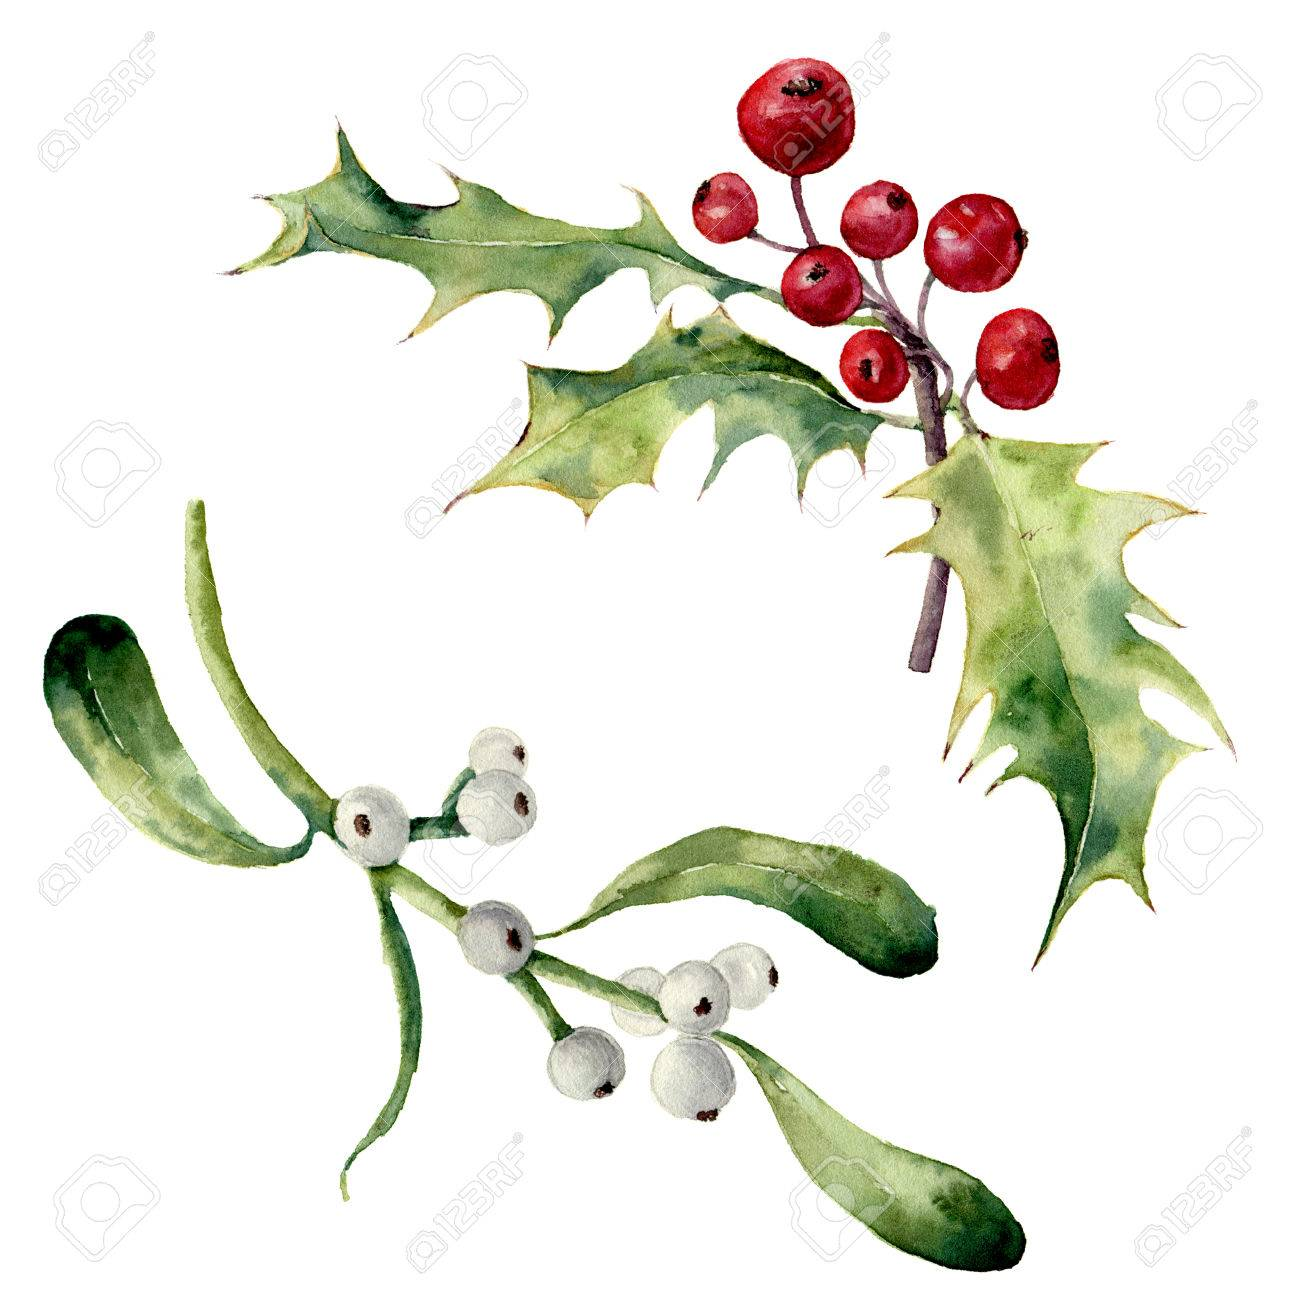 Image result for holly and mistletoe